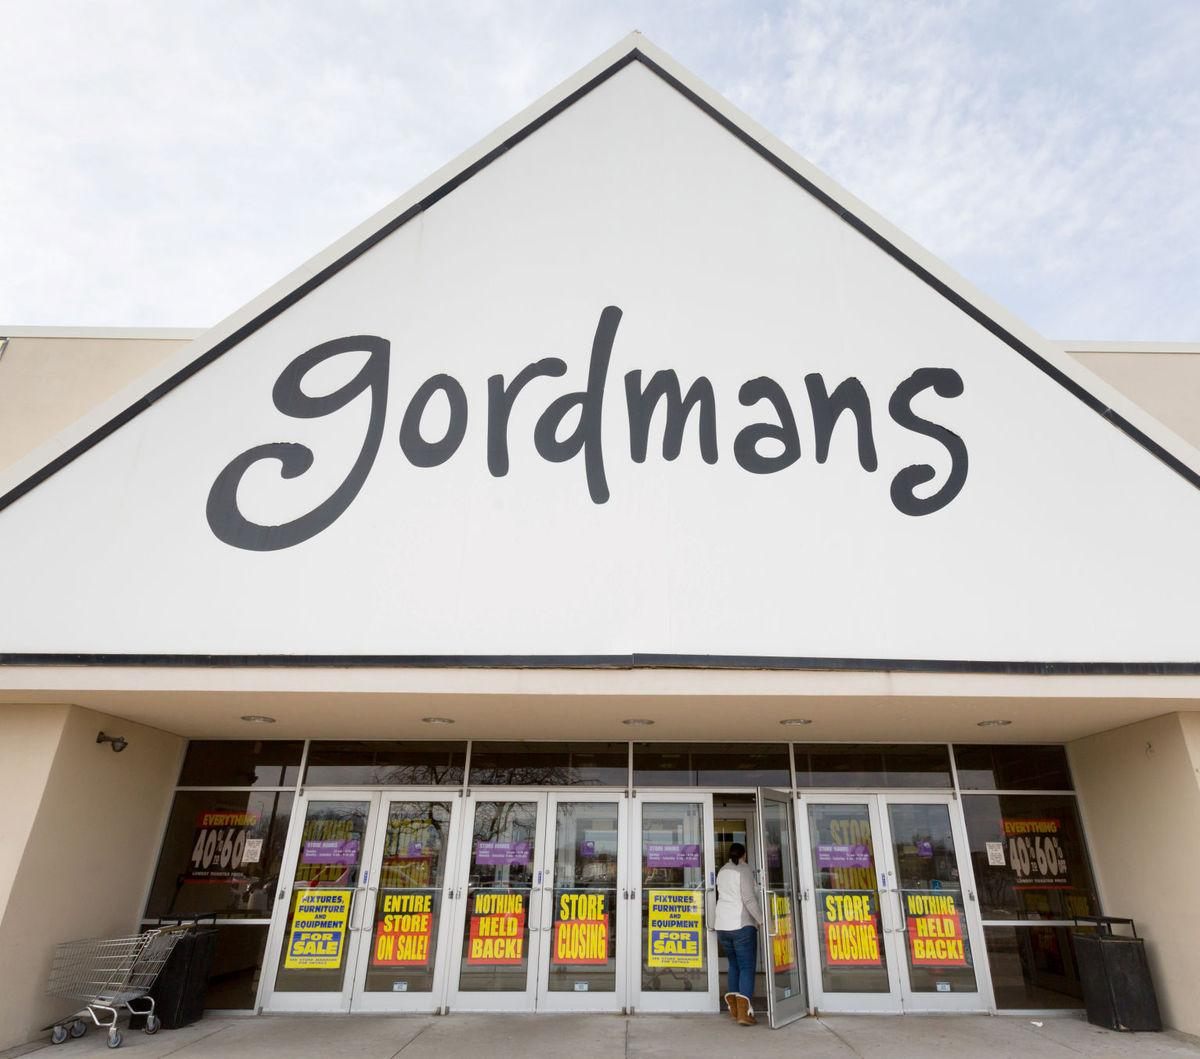 Complete coverage of Gordmans Black Friday Ads & Gordmans Black Friday deals info/5(10).